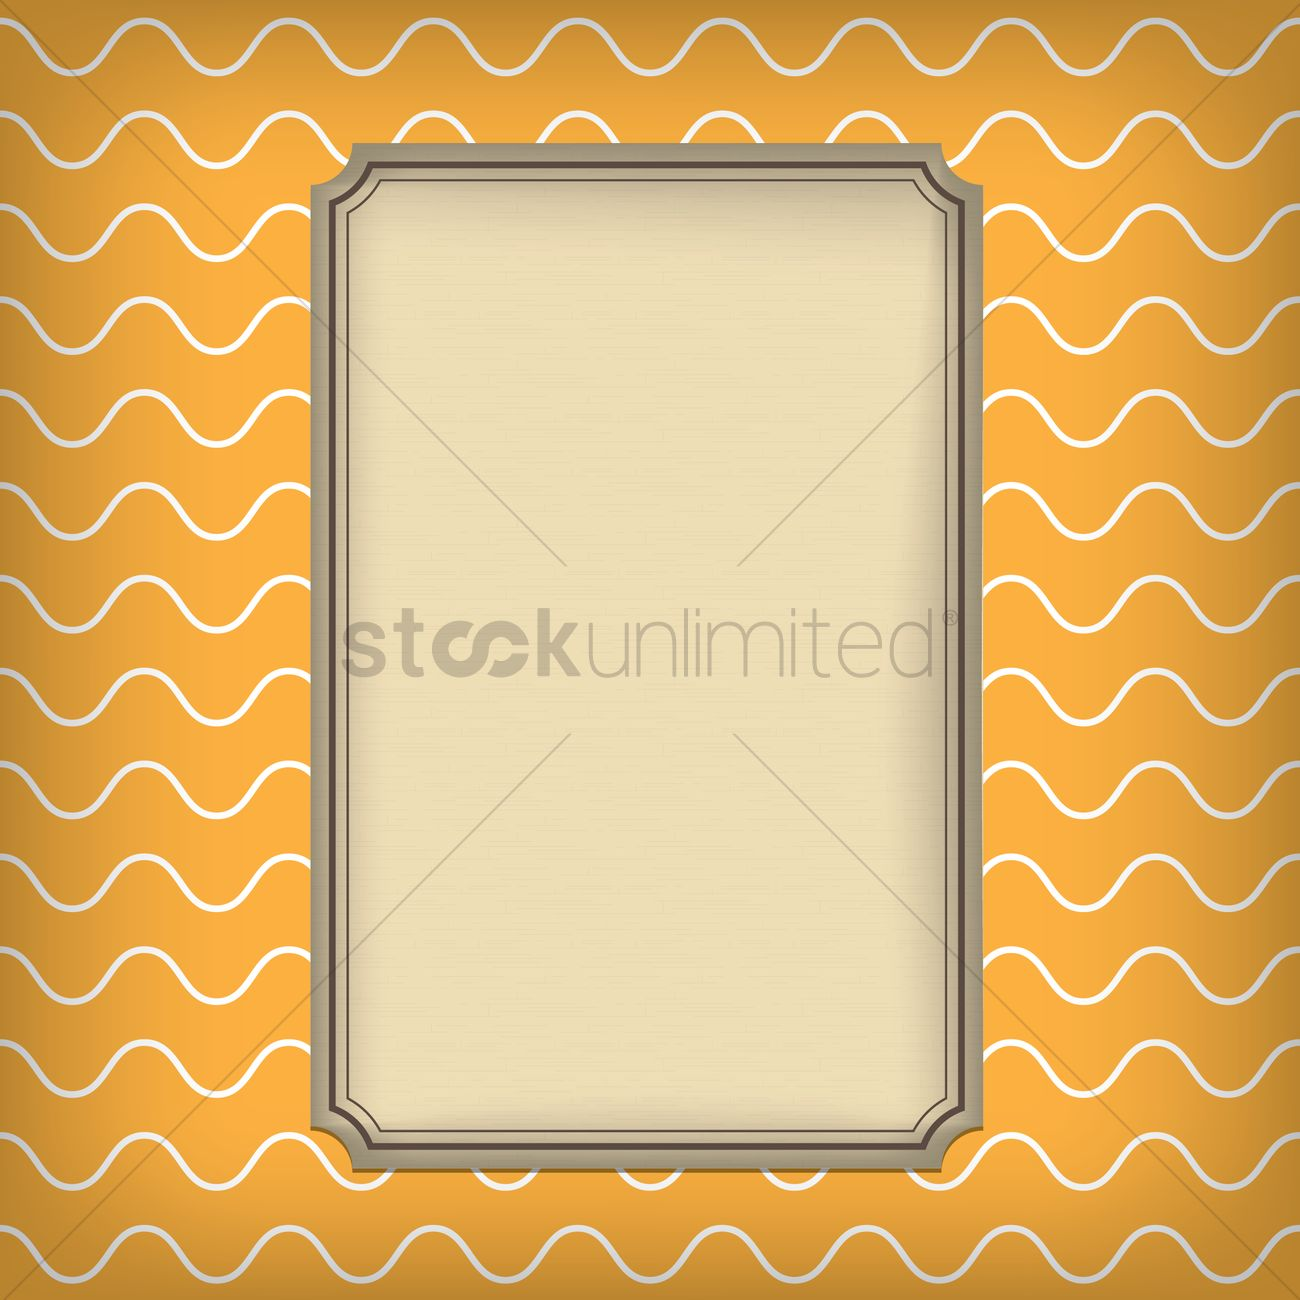 free greeting card template design vector image 1625297